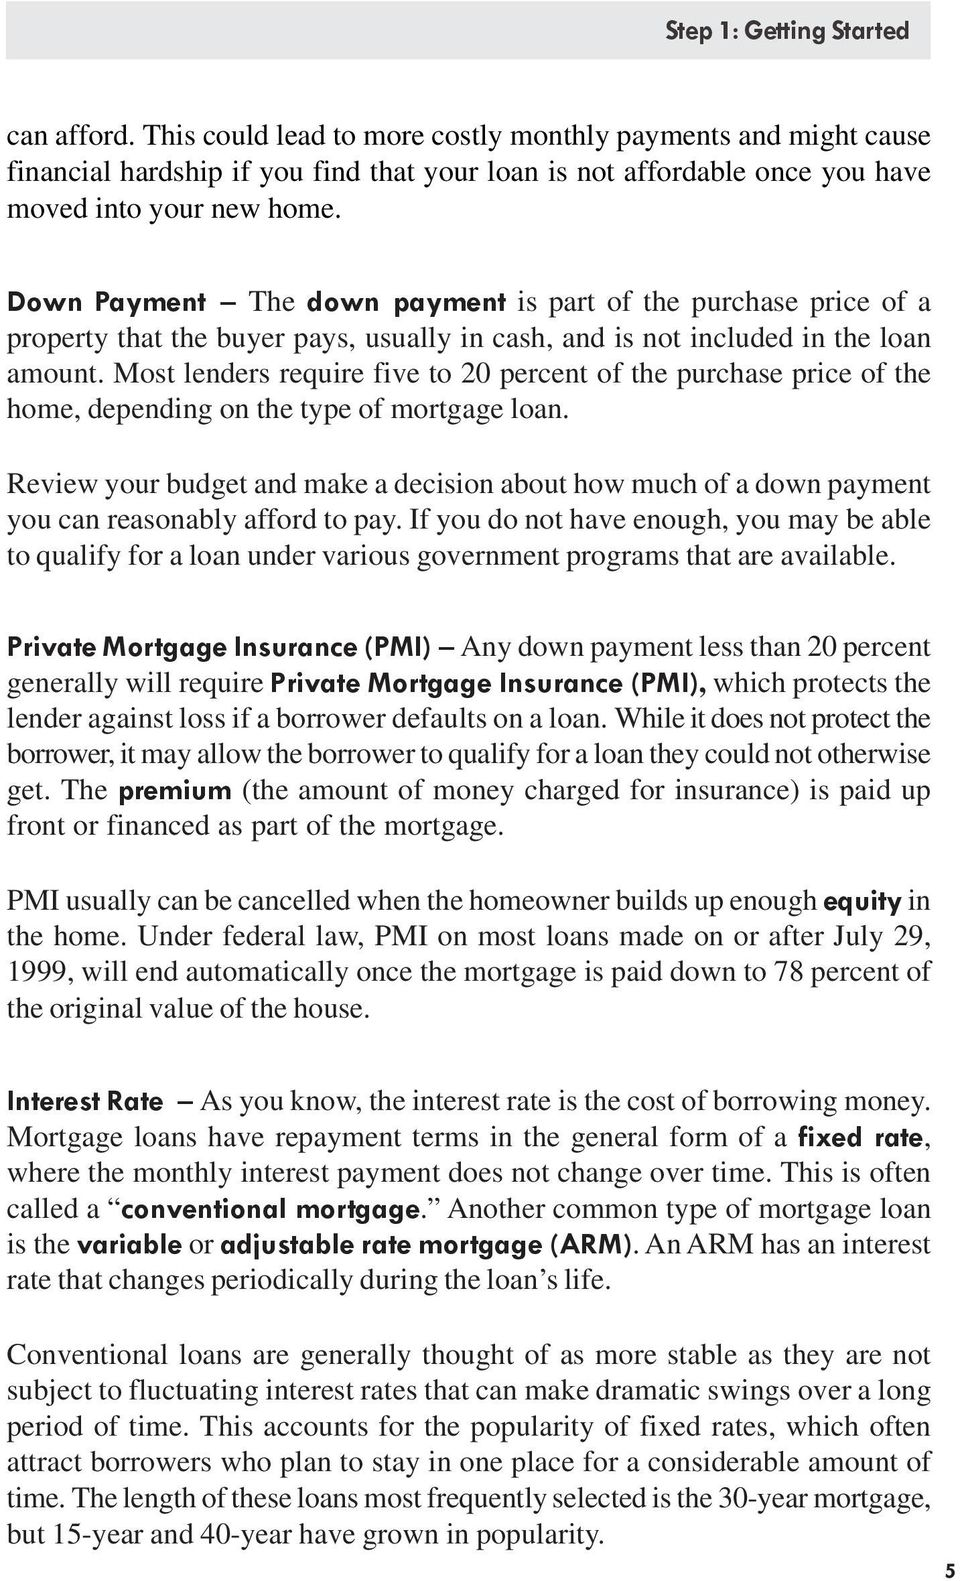 Down Payment The down payment is part of the purchase price of a property that the buyer pays, usually in cash, and is not included in the loan amount.